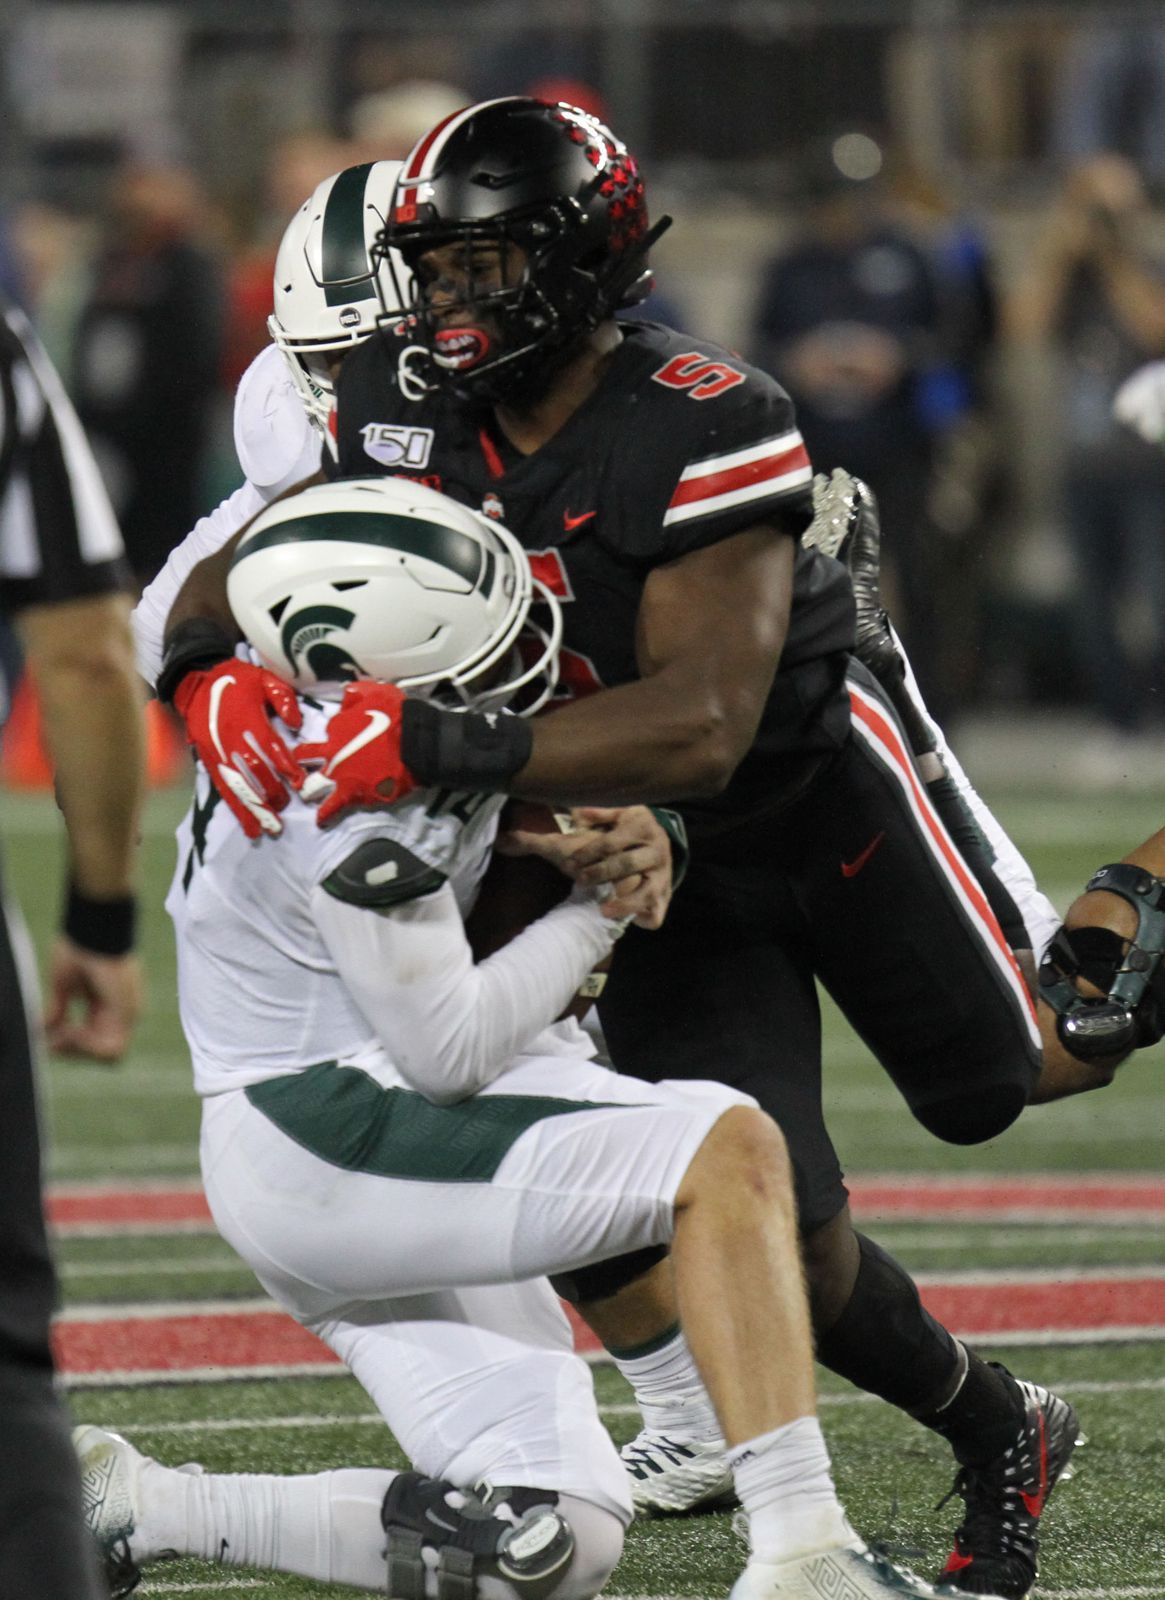 Ohio State Football And Justin Fields Were Forced To Figure Is The Perfect High Quality Nfl Superbowl Wallpap In 2020 With Images Ohio State Football Football Ohio State